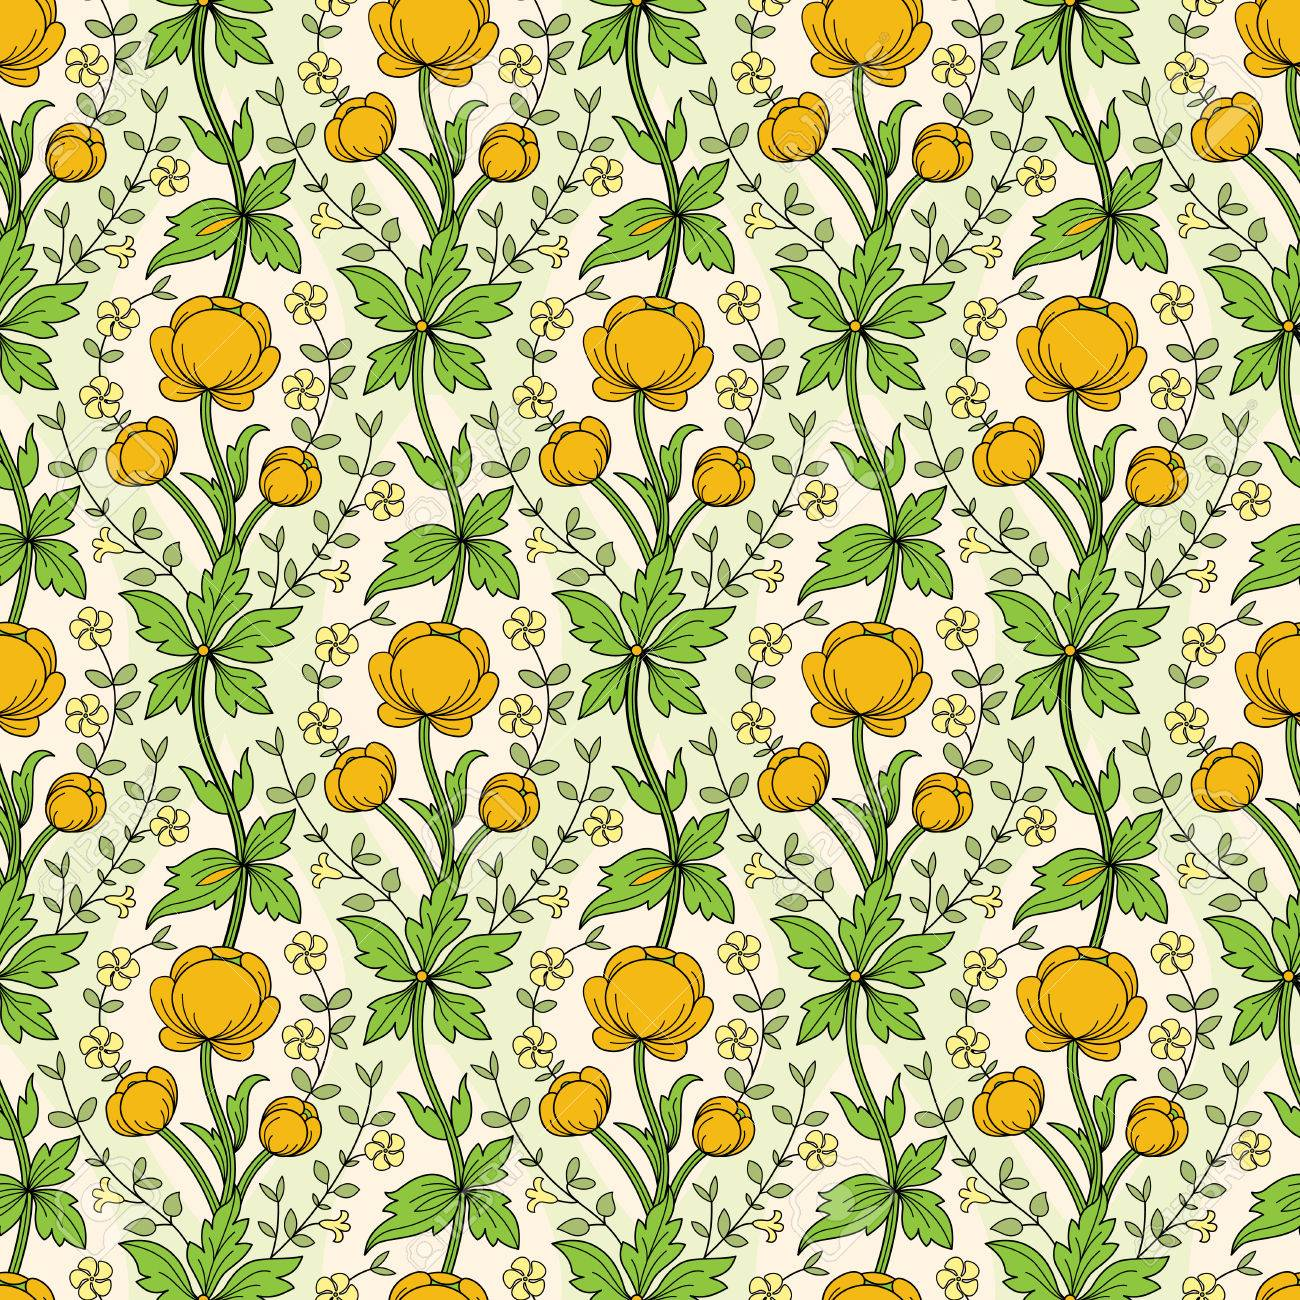 Vintage Floral Wallpaper With Yellow Globe Flowers And Periwinkle